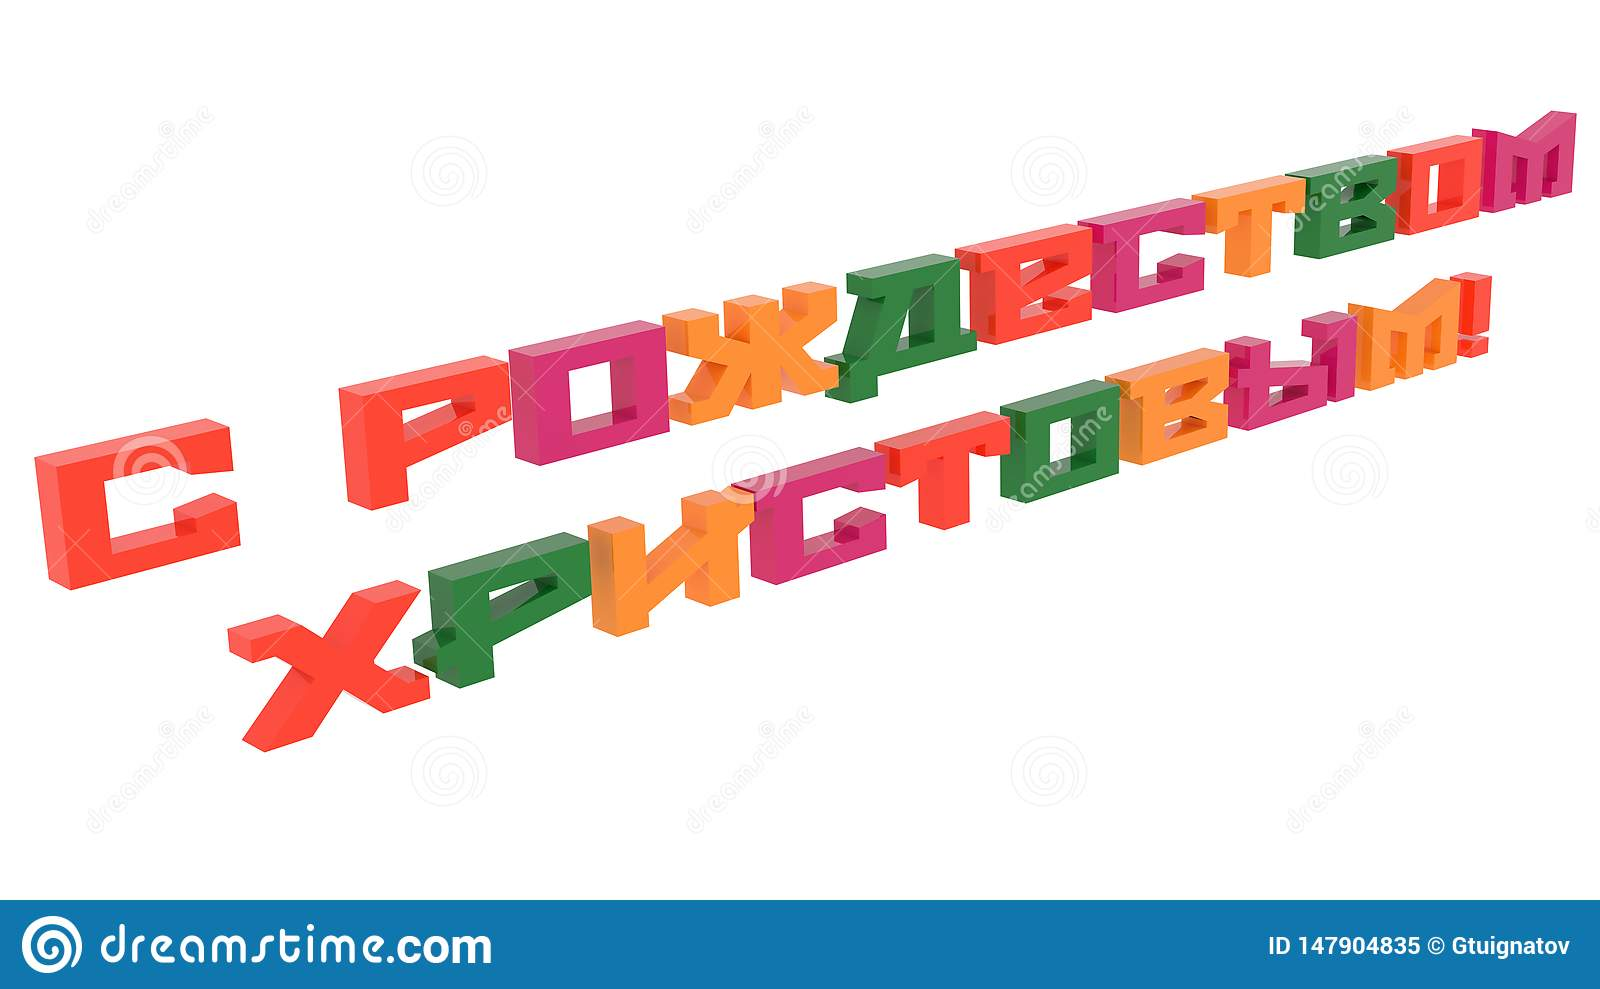 Merry Christmas In Russian Words 3D Rendered Congratulation Text With Techno, Futuristic, Subway Font Illustration Colored